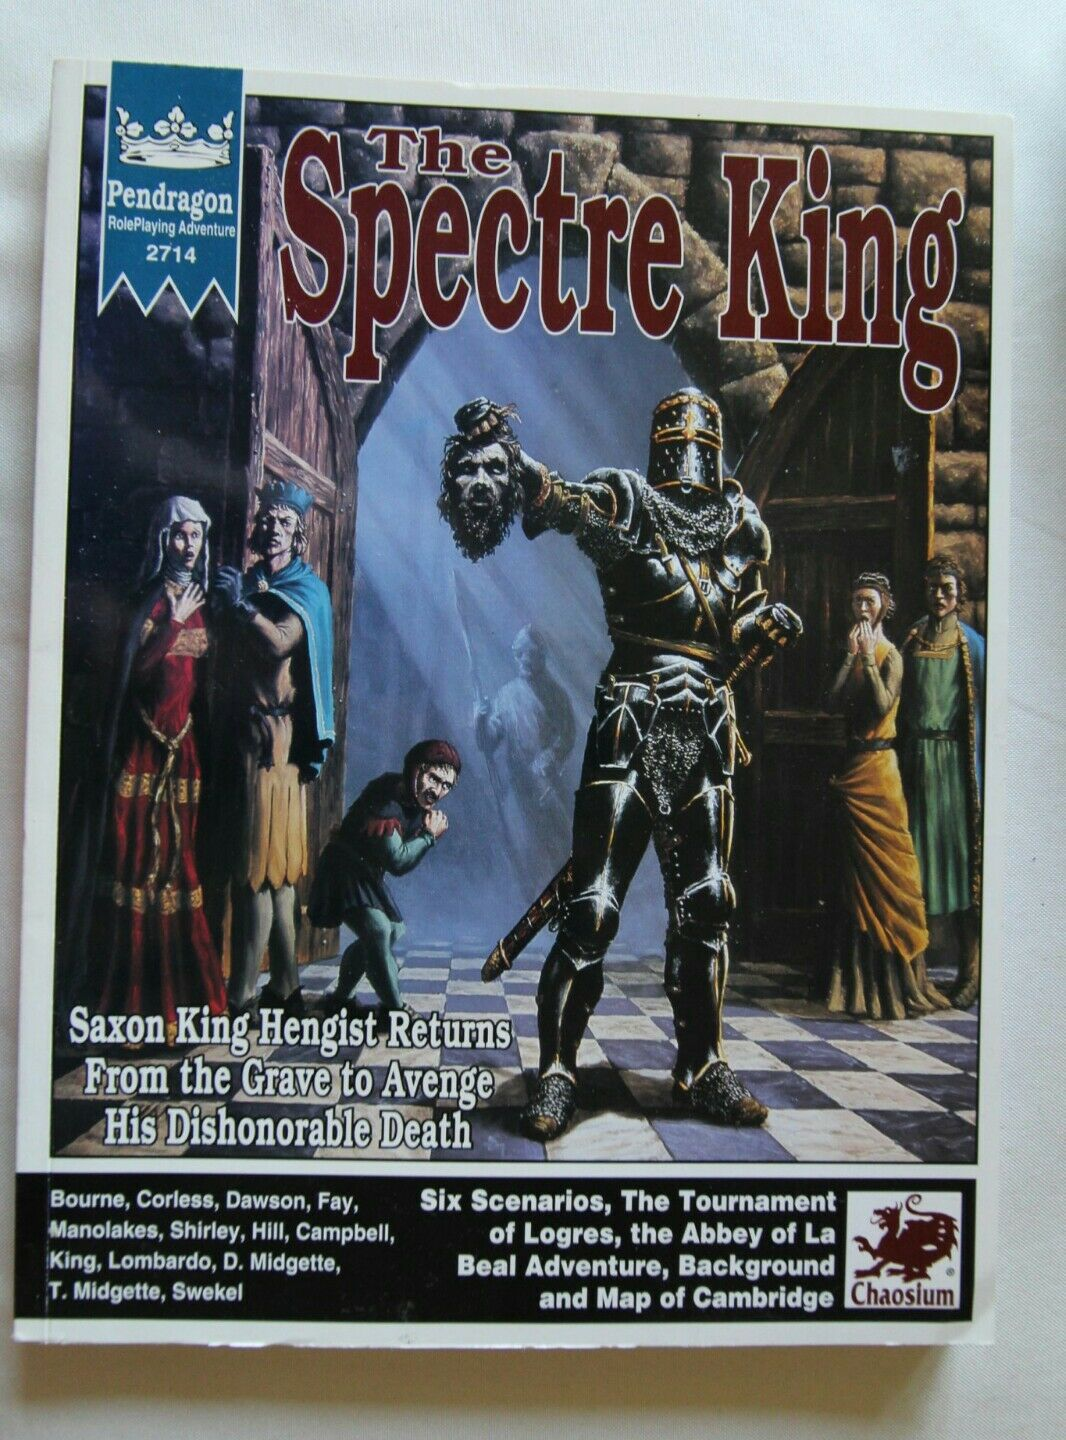 The Spectre king Pendragon chaosium arthurian arthir RPG rpgs roleplaying book